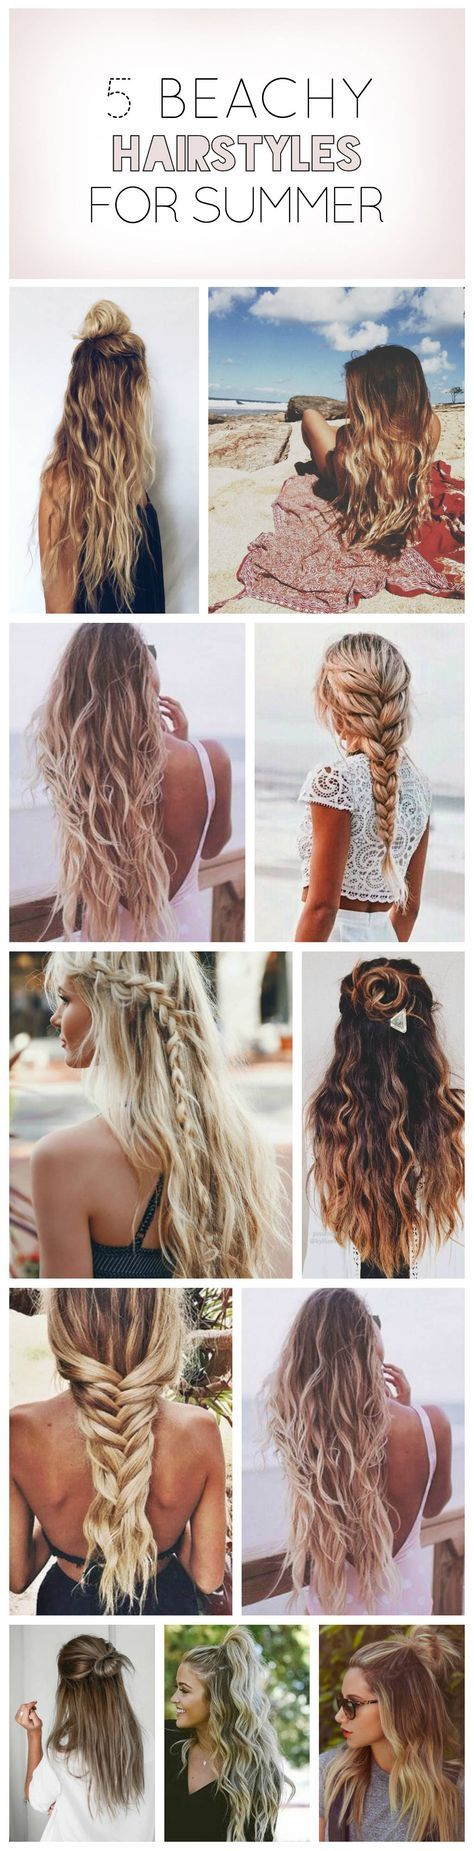 beachy hairstyles for summer summer hair style and hair goals